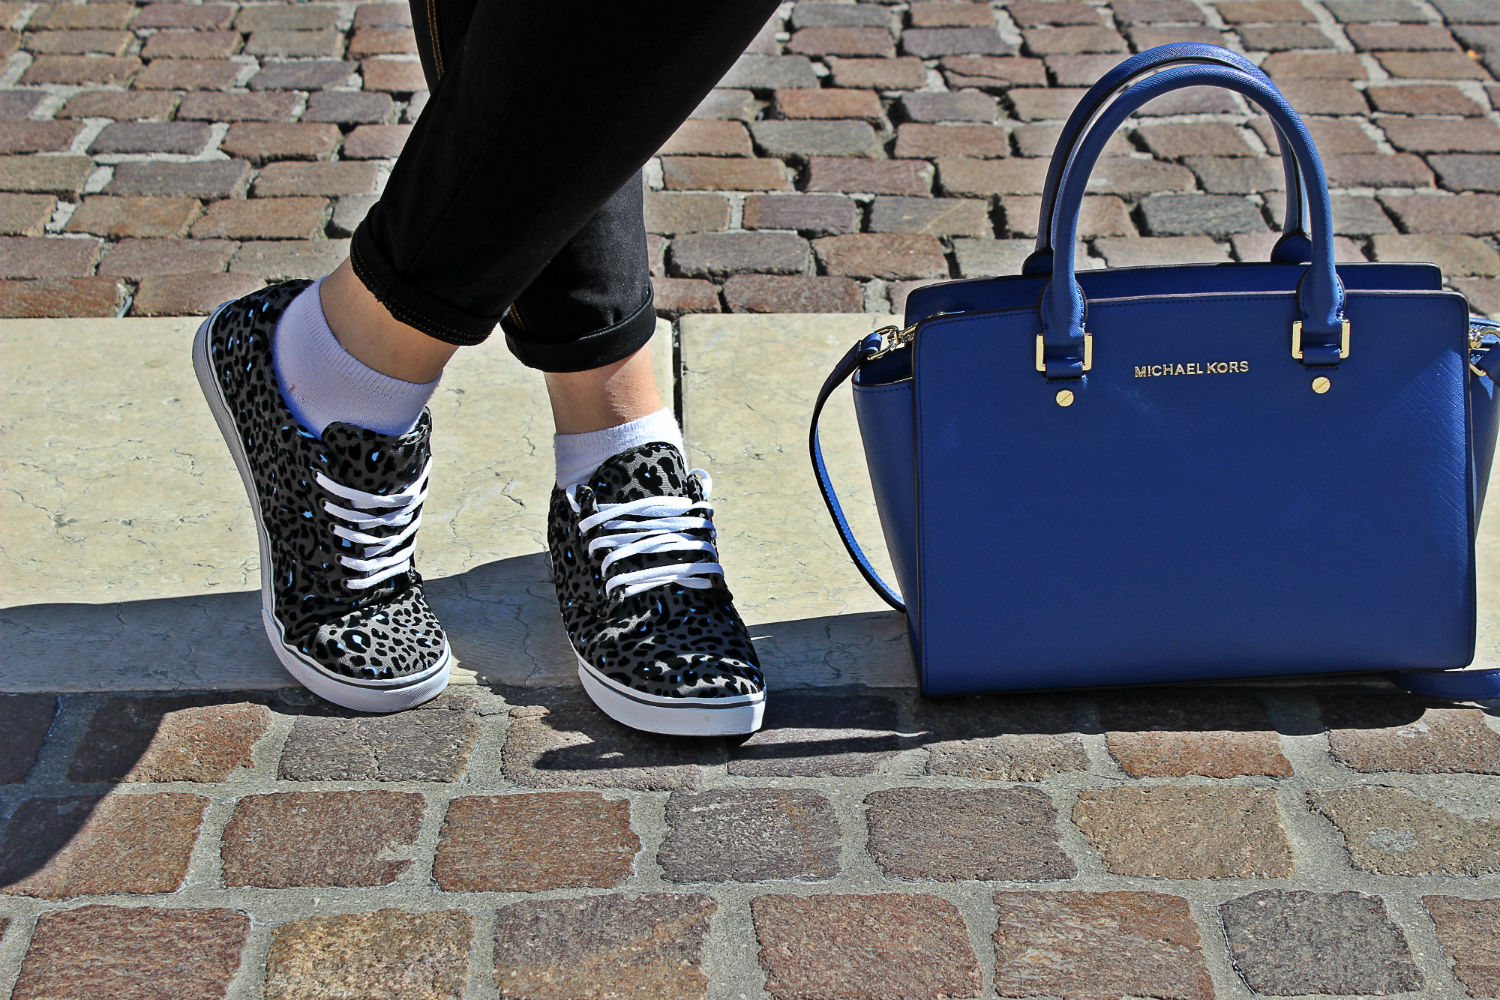 VANS-BLU-ROYAL-BLUMARINE-SUNGLASSES-MICHAELKORS-BAG-SPORTIT-SHOP-ONLINE6